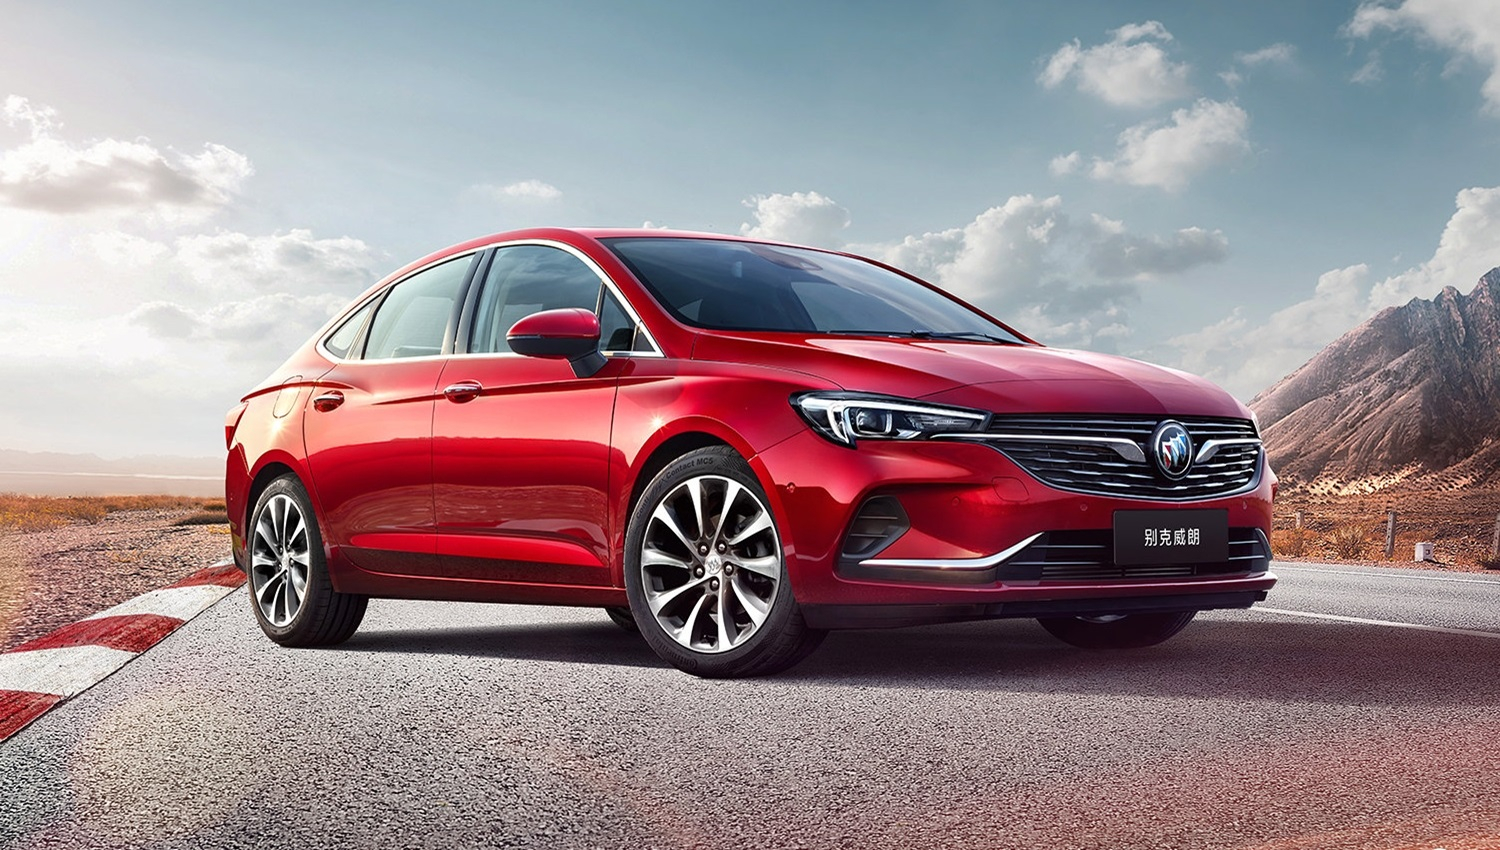 Gm Launches 2020 Buick Verano Refresh In China | Gm Authority 2022 Buick Verano Wheels, Engine, Dimensions